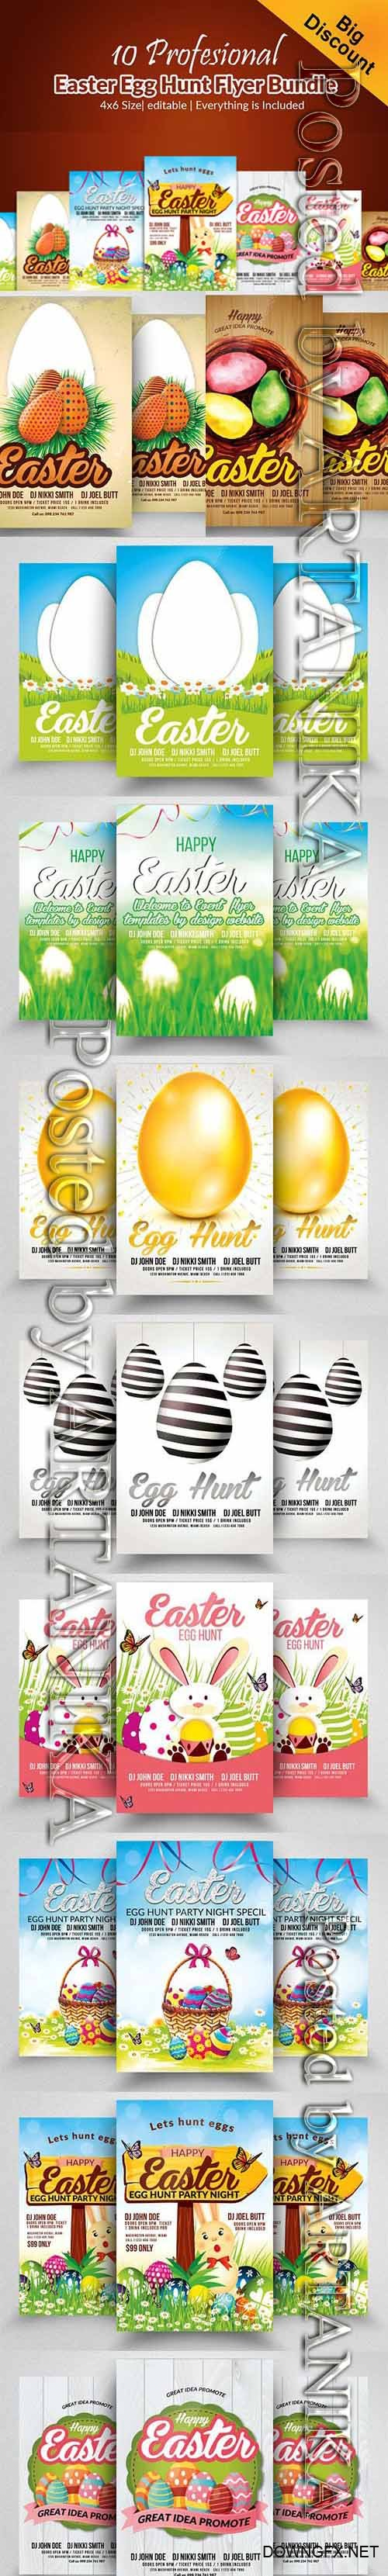 CreativeMarket - 10 Easter Egg Hunt Flyer Bundle 2334132